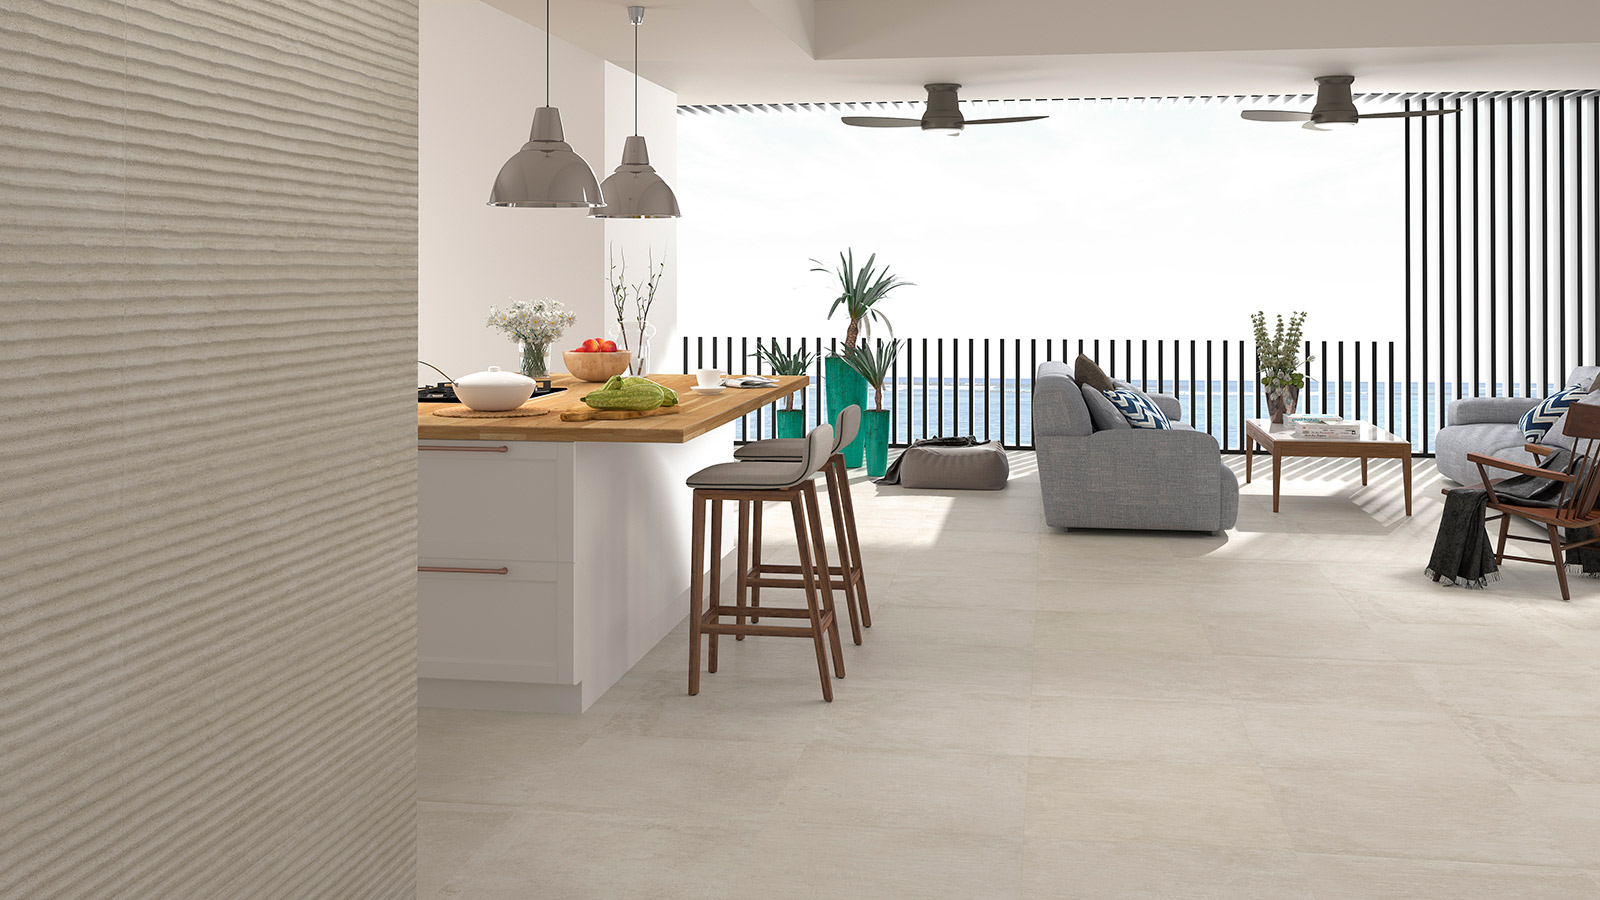 Ceramic solutions for kitchens by Venis: 3 designs for 3 styles